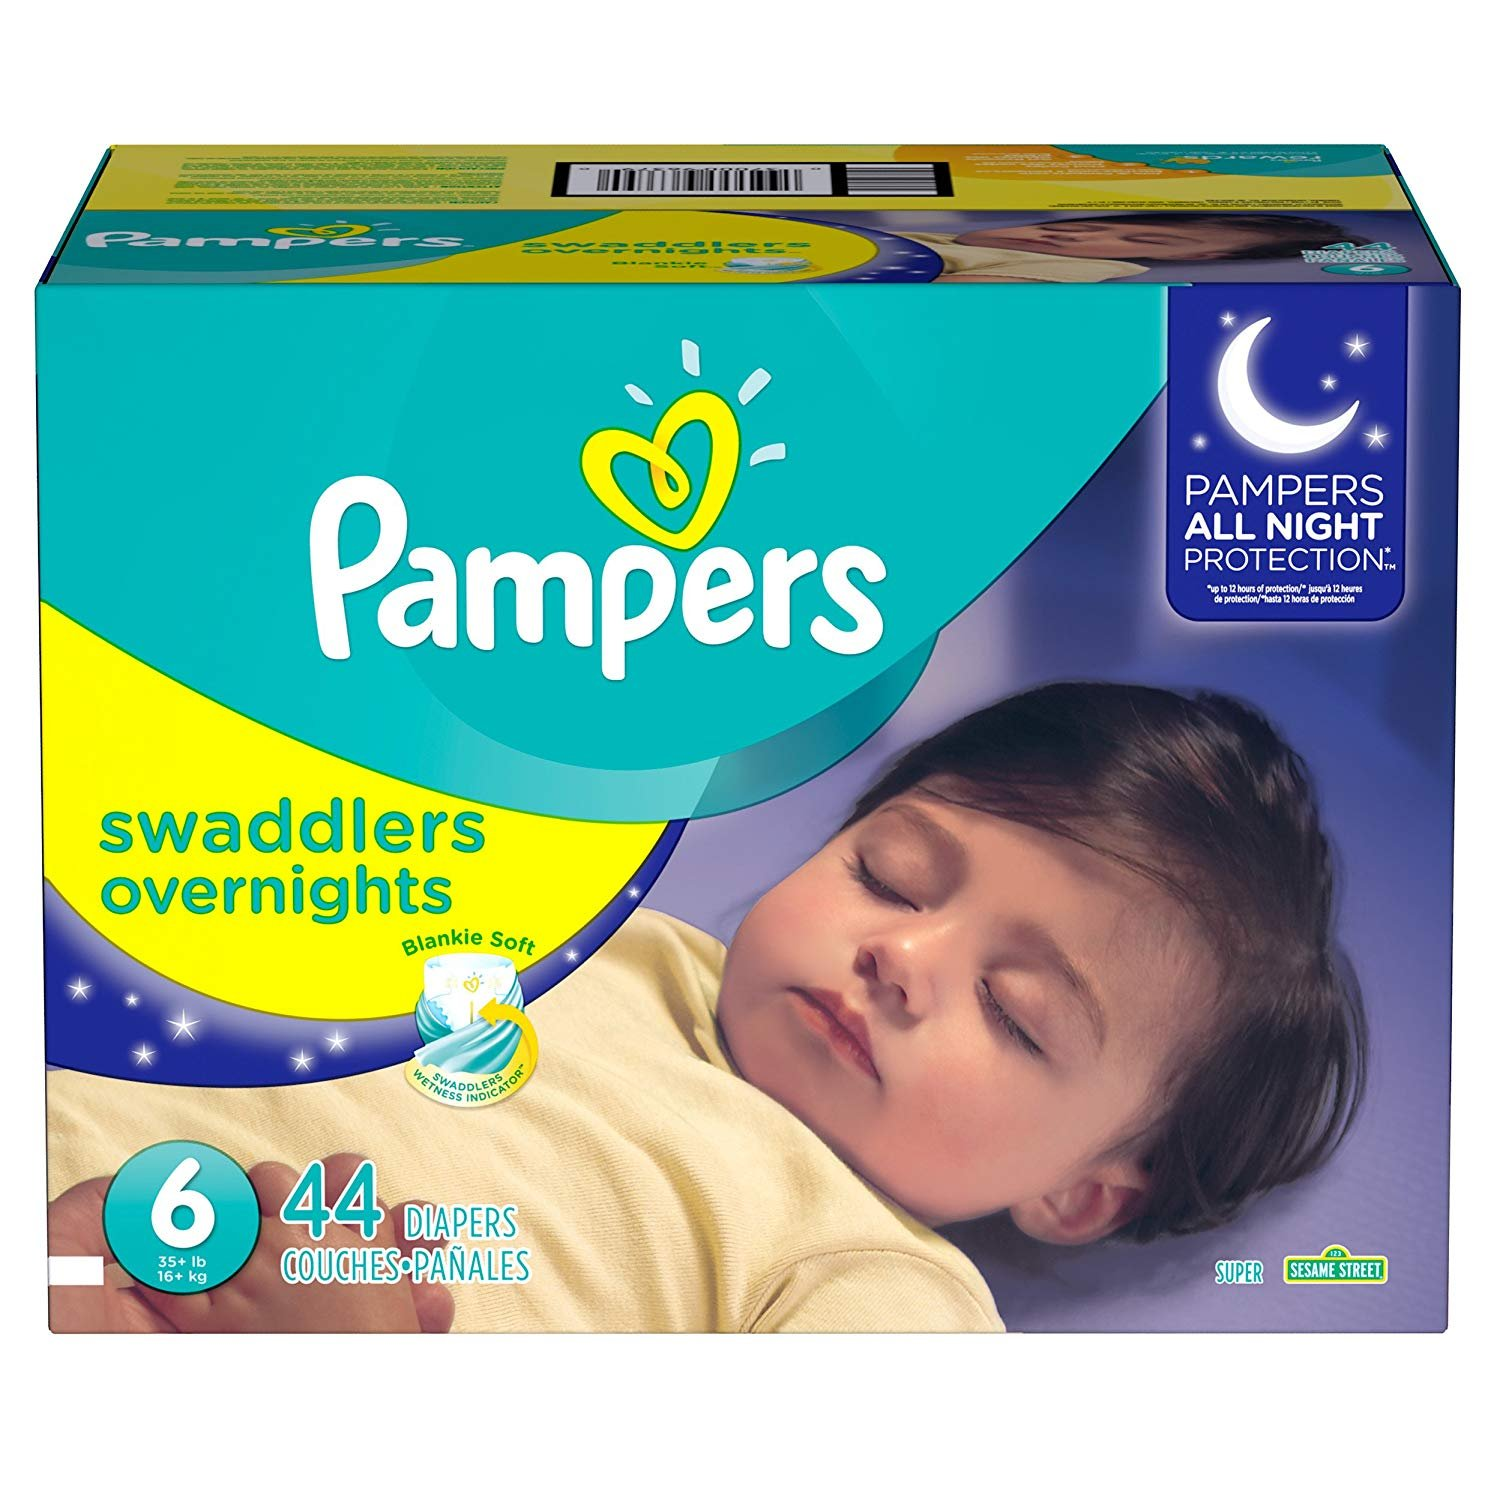 Pampers Swaddlers Overnights Disposable Diapers Size 6, 44 Count, SUPER